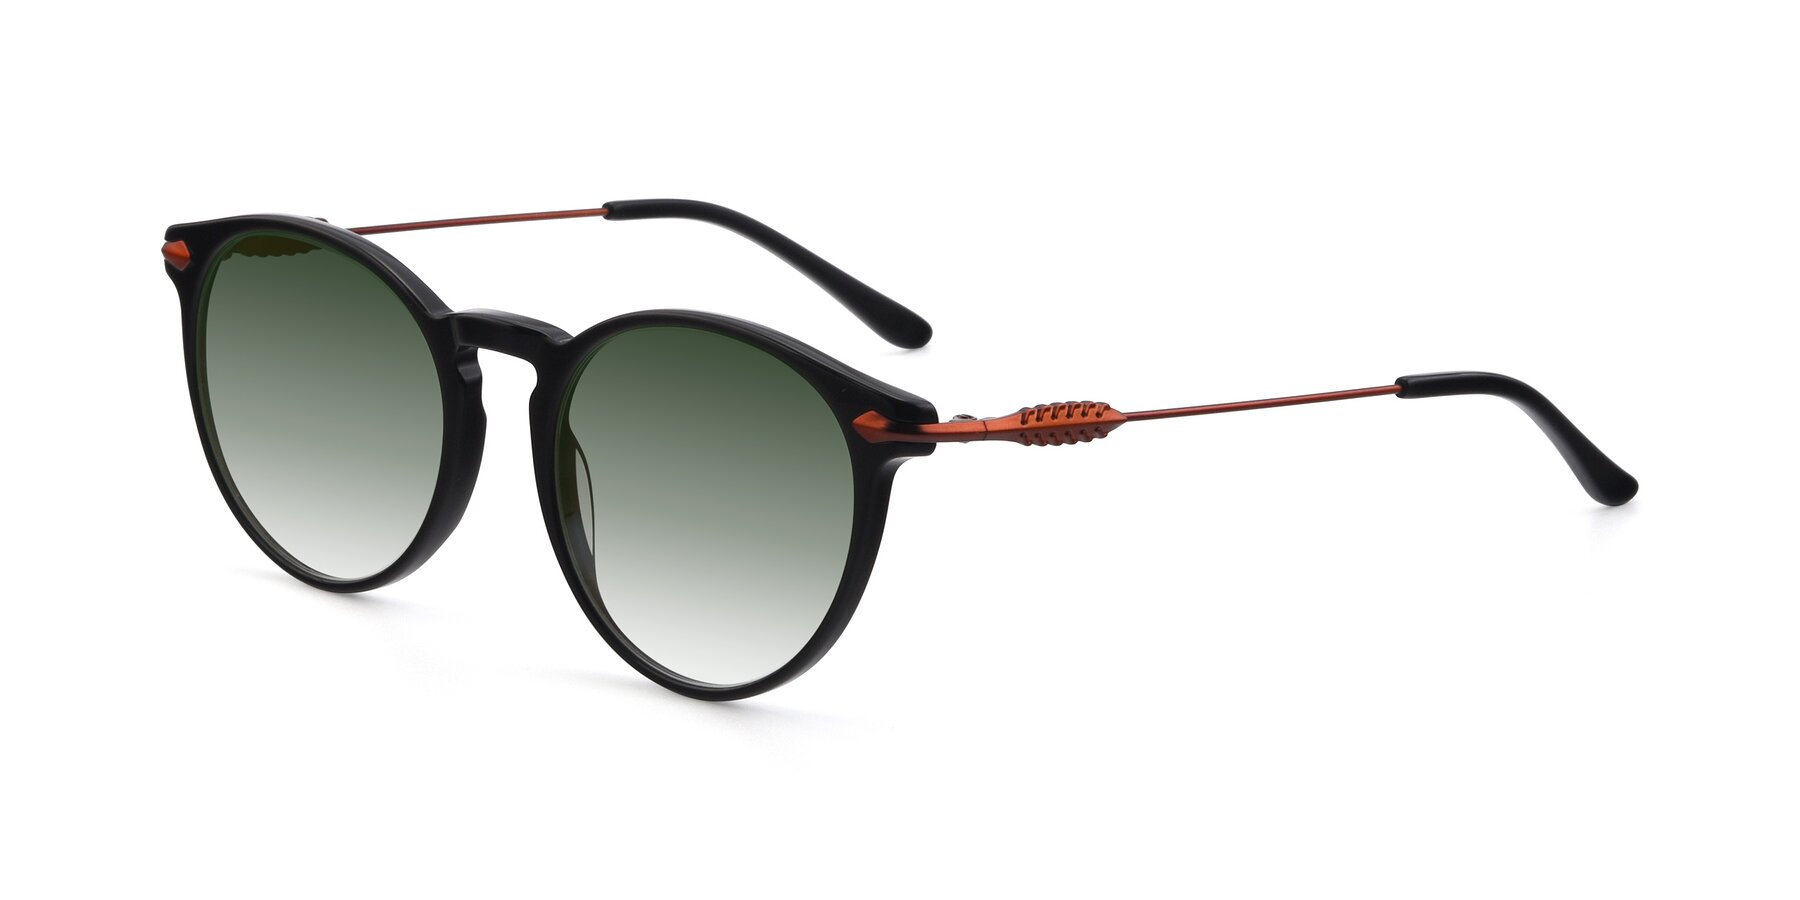 Angle of 17660 in Black with Green Gradient Lenses